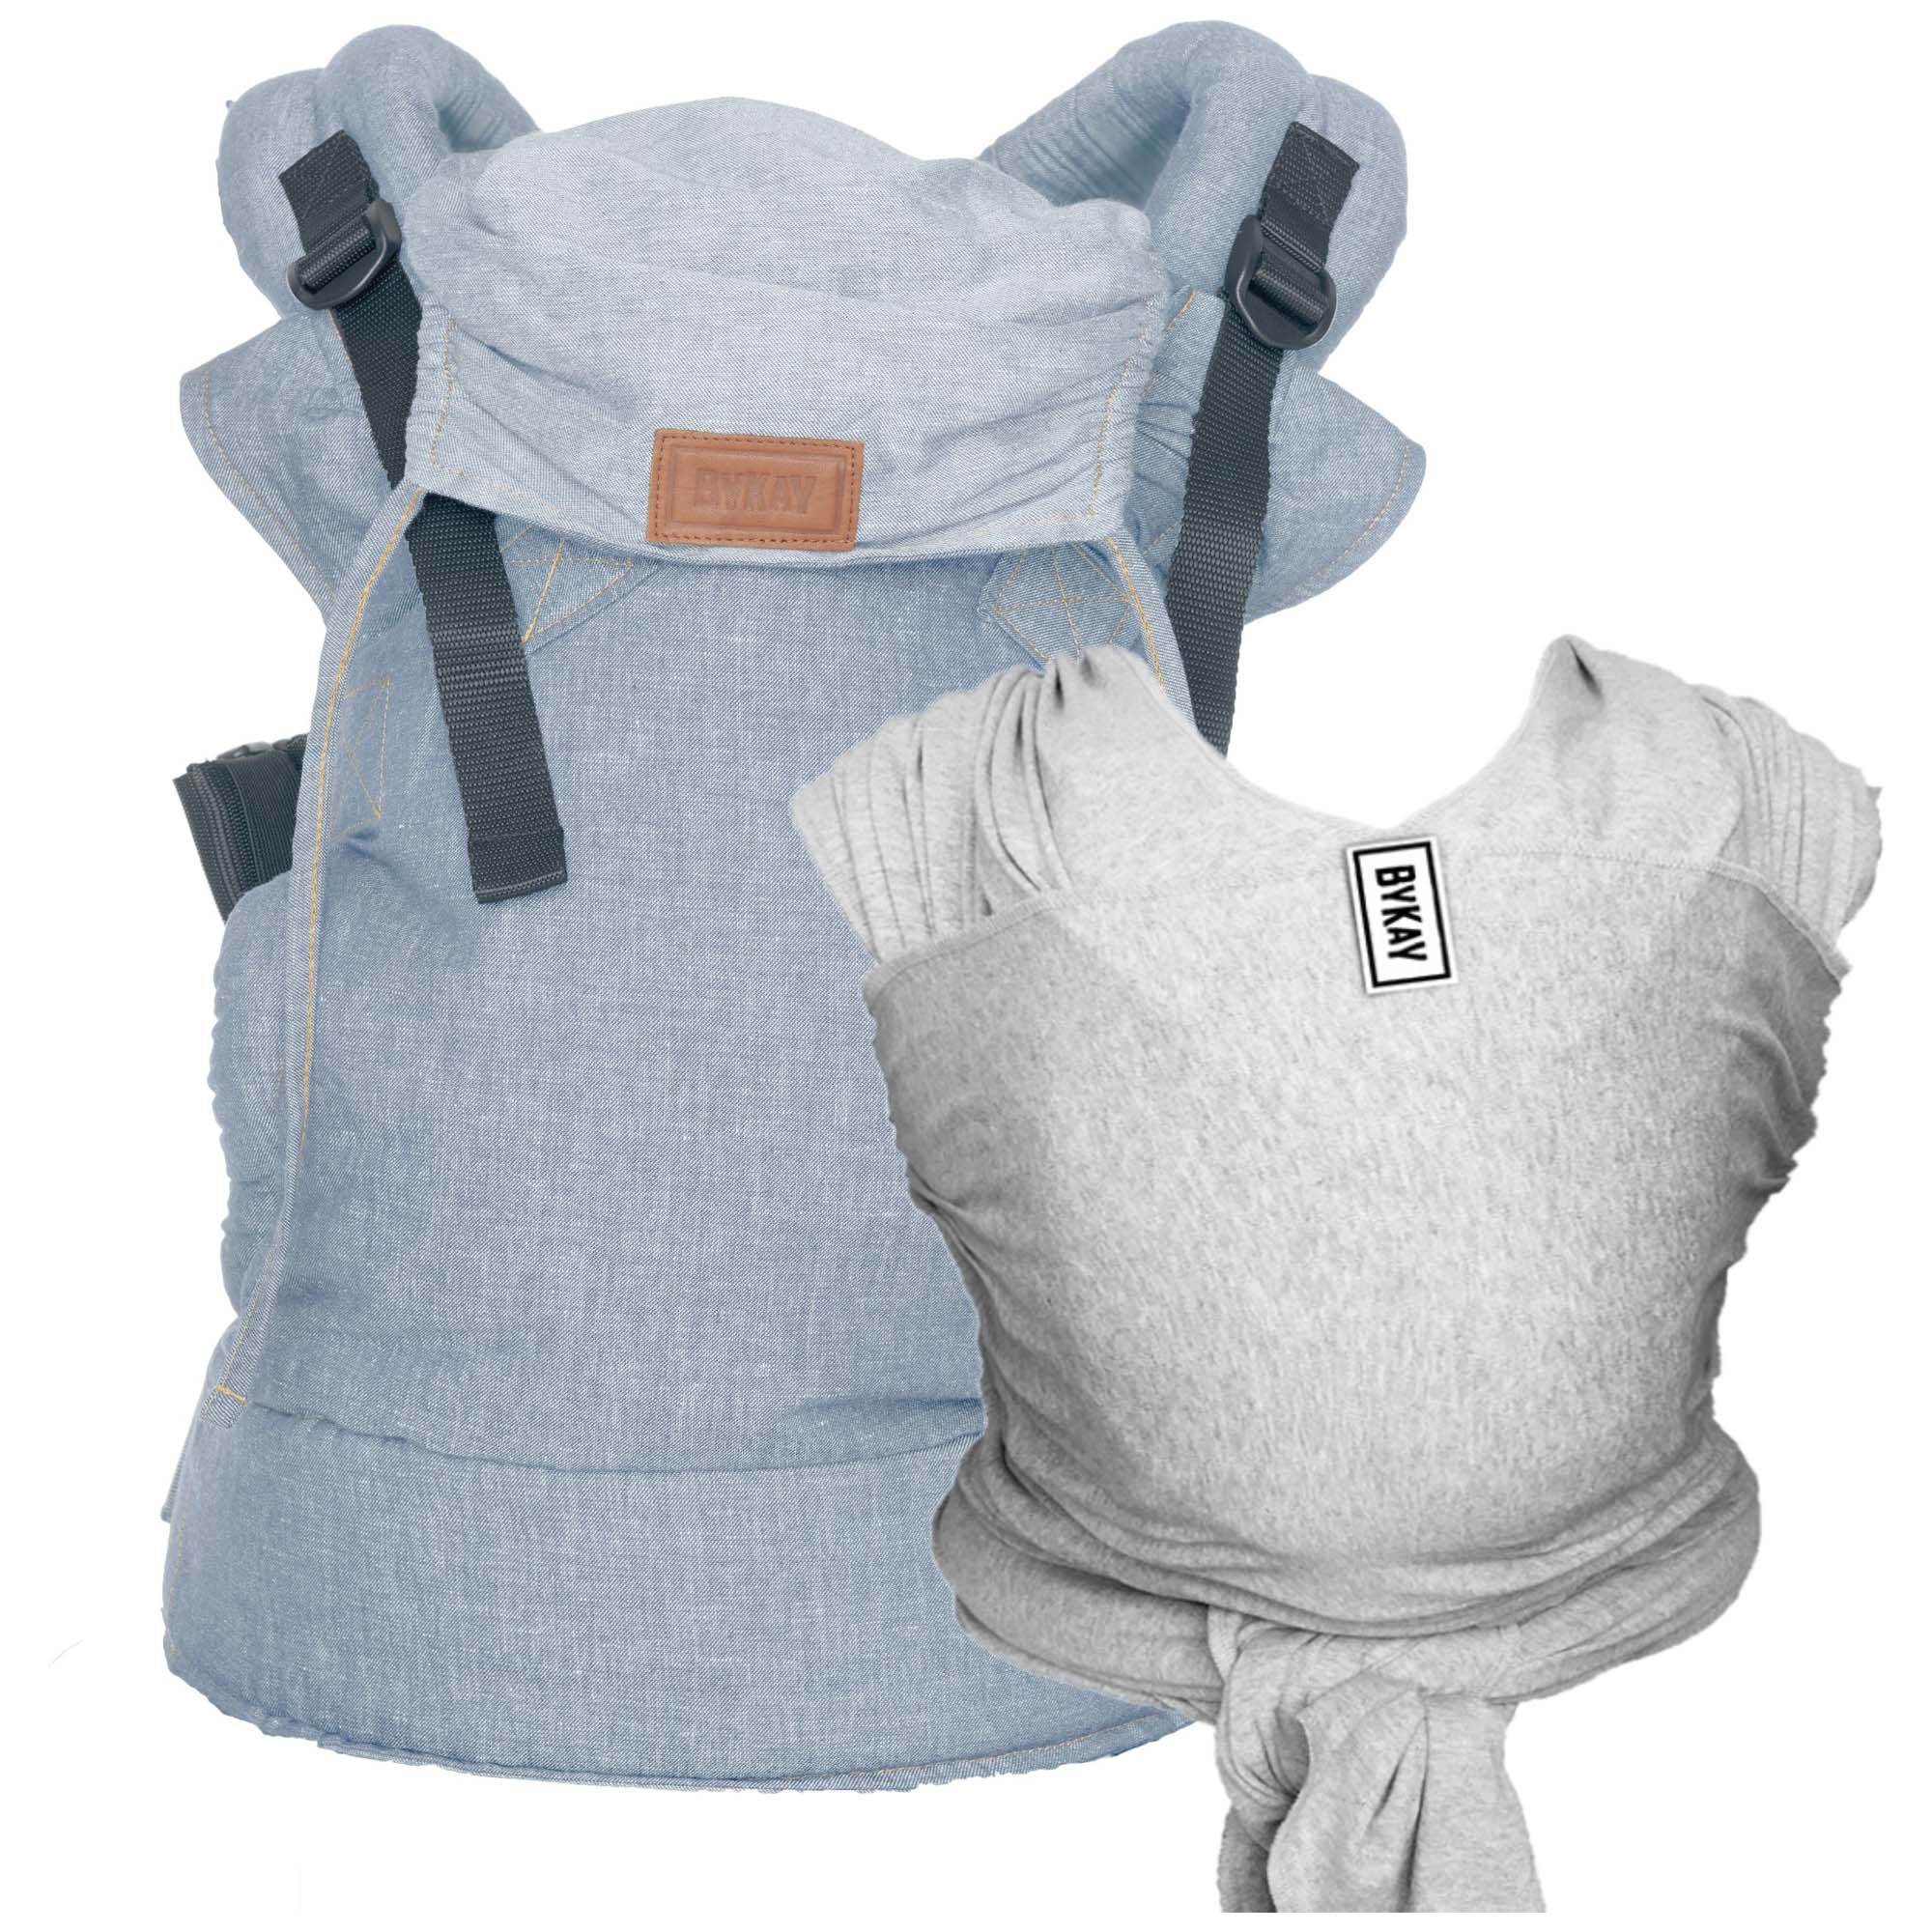 Bykay Stretchy Wrap Classic Draagdoek Grey Click Carrier Deluxe Draagzak